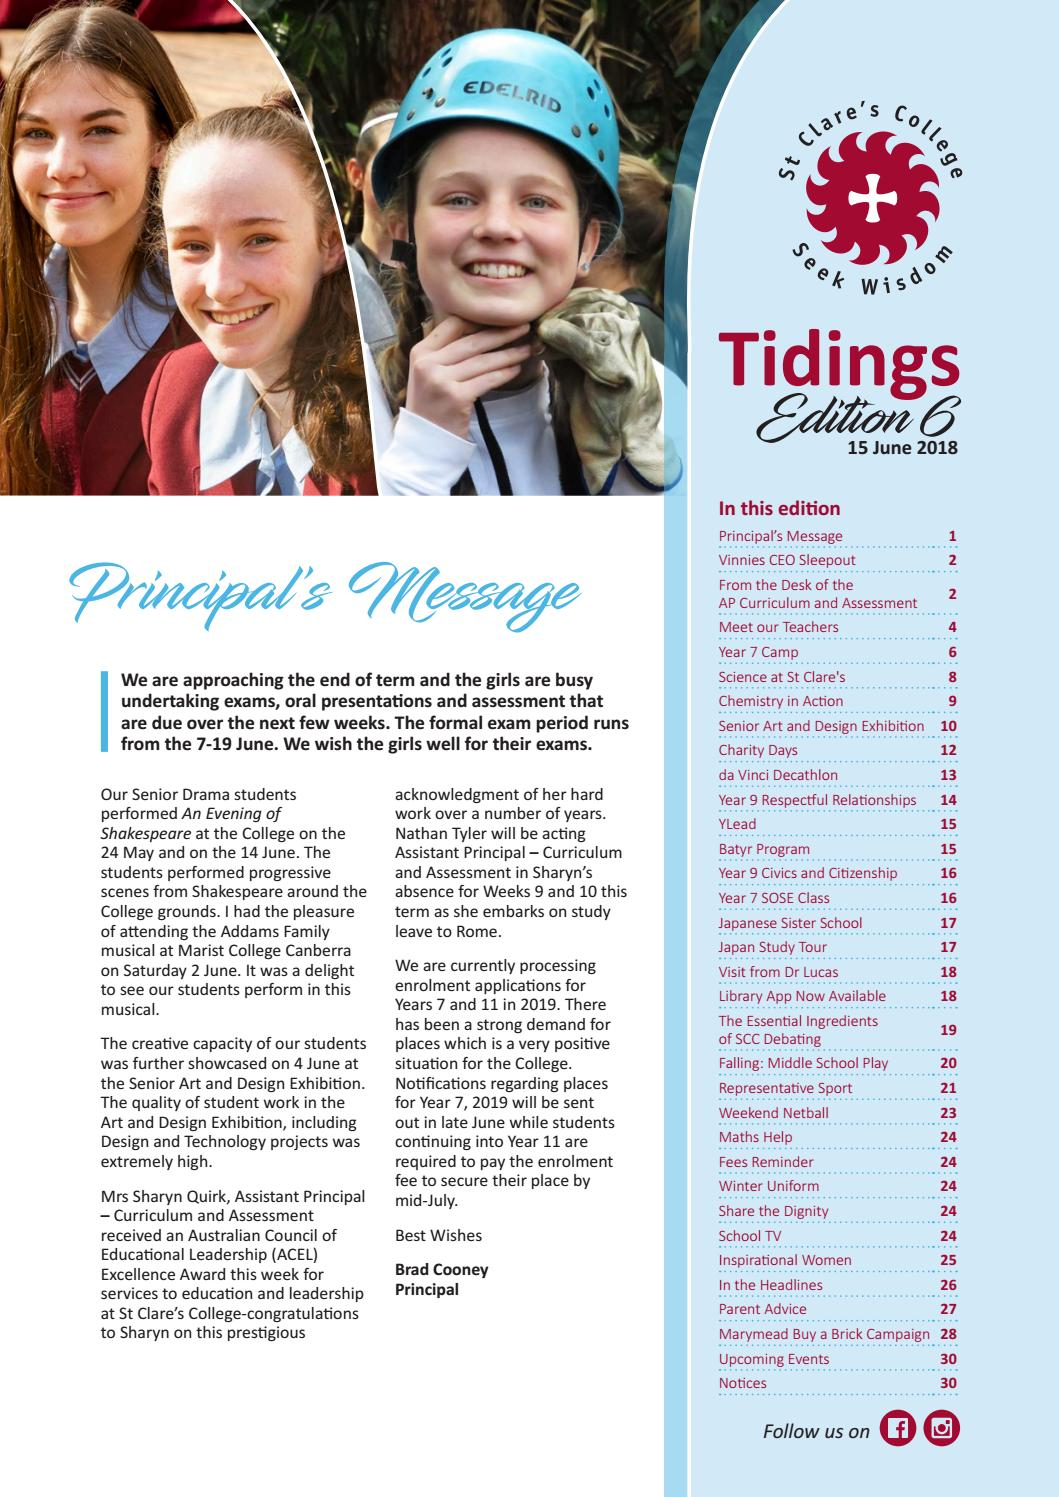 tidings edition 6 2018 by st clares college canberra issuu